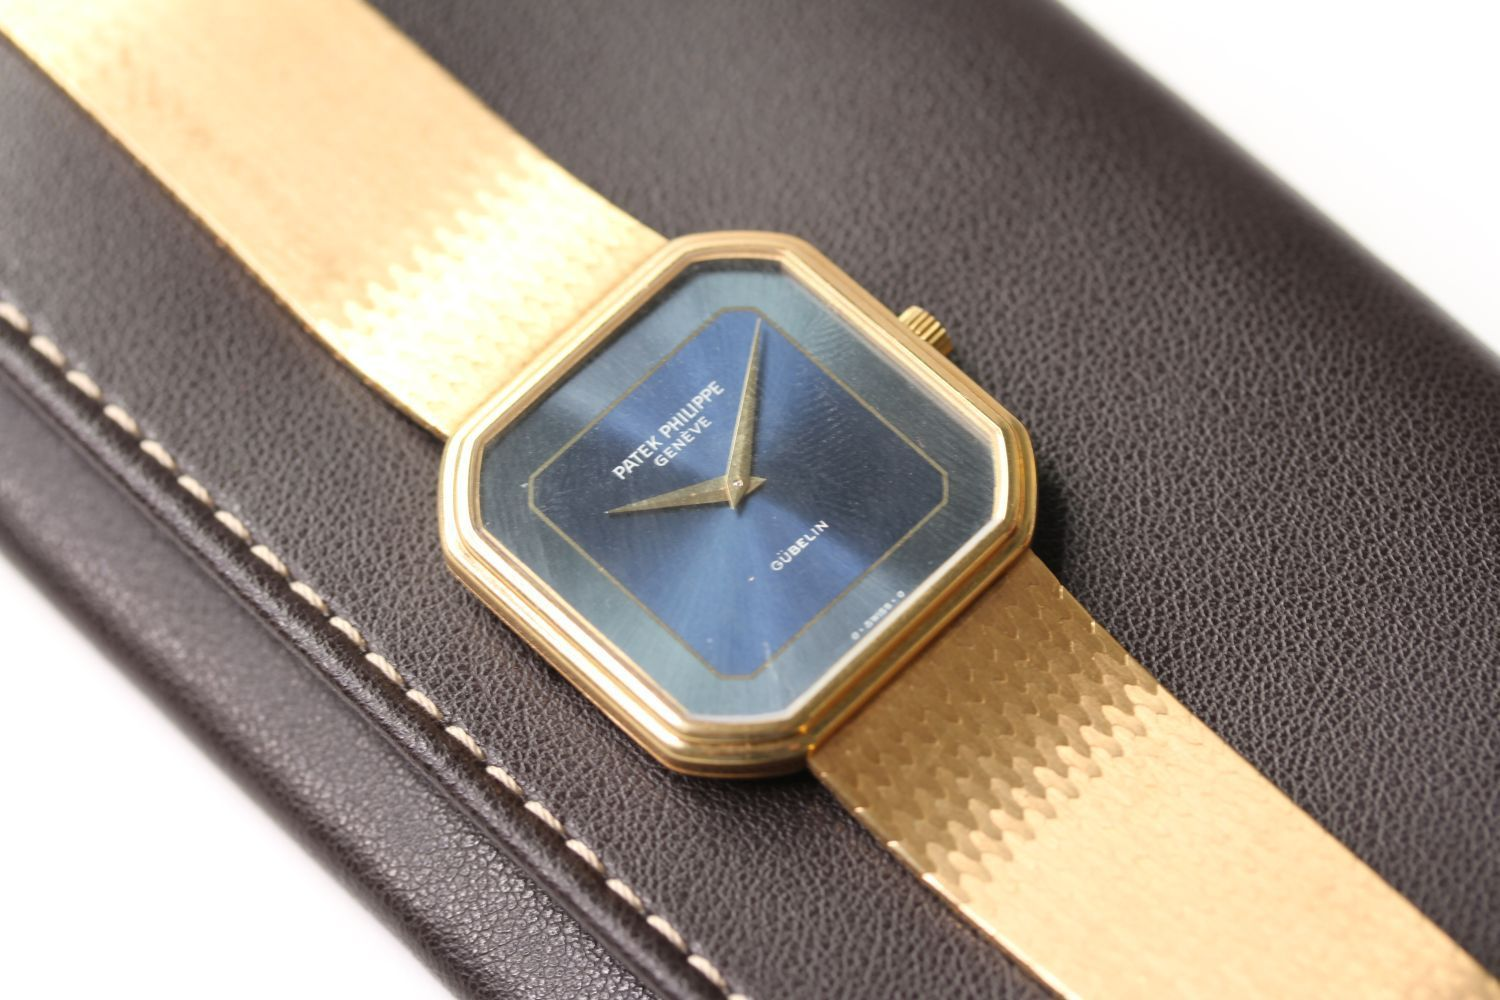 VINTAGE 18CT PATEK PHILIPPE RETAILED GÜBELIN WRIST WATCH WITH PATEK PHILIPPE LEATHER POUCH, - Image 3 of 4